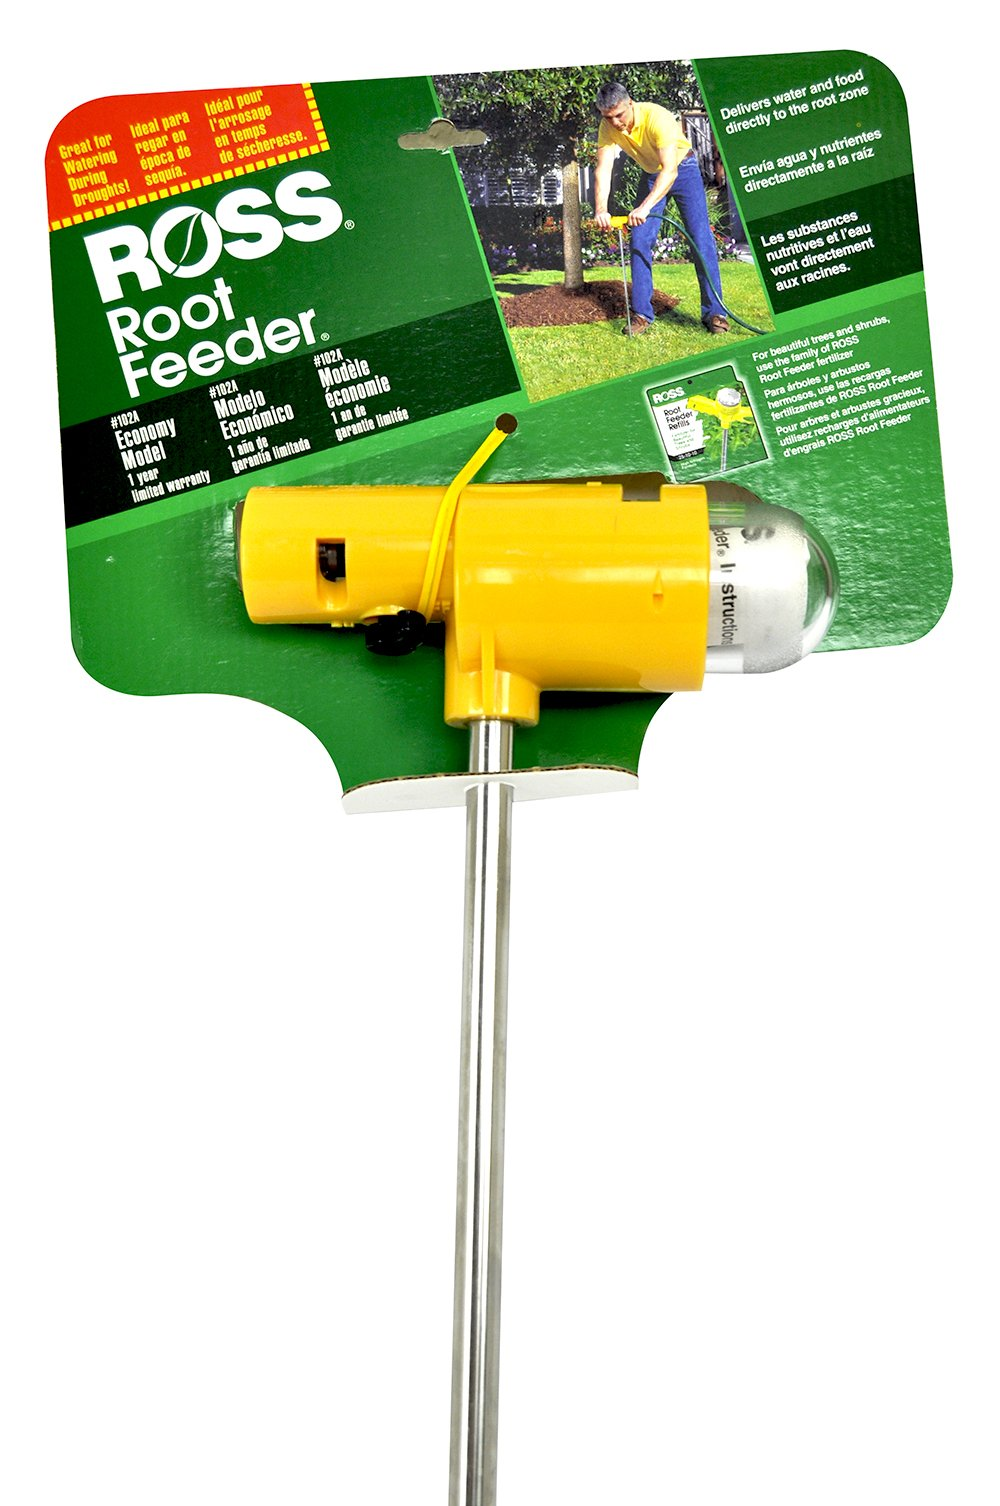 Ross Root Feeder Economy Model #102A, For Use Fertilizer Refills (Ideal for Watering During Droughts), 1 Year Limited Warranty